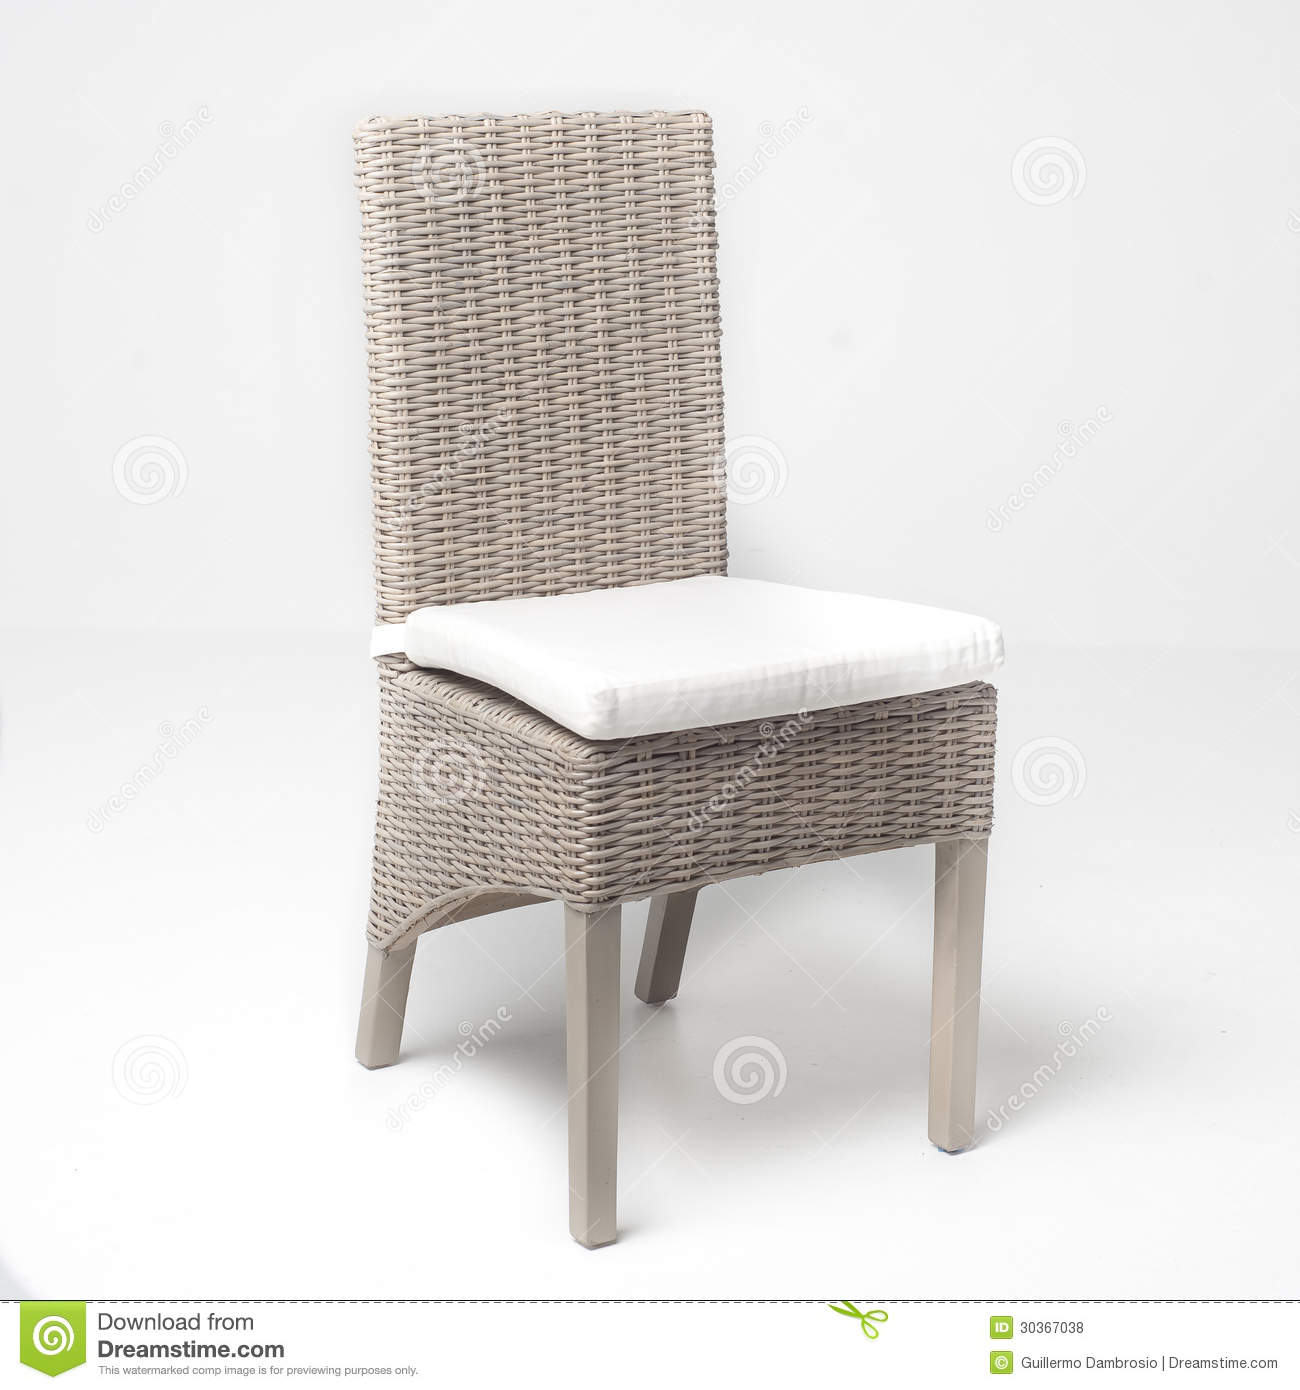 White wicker chair royalty free stock photos image 30367038 - Petite chaise en osier ...